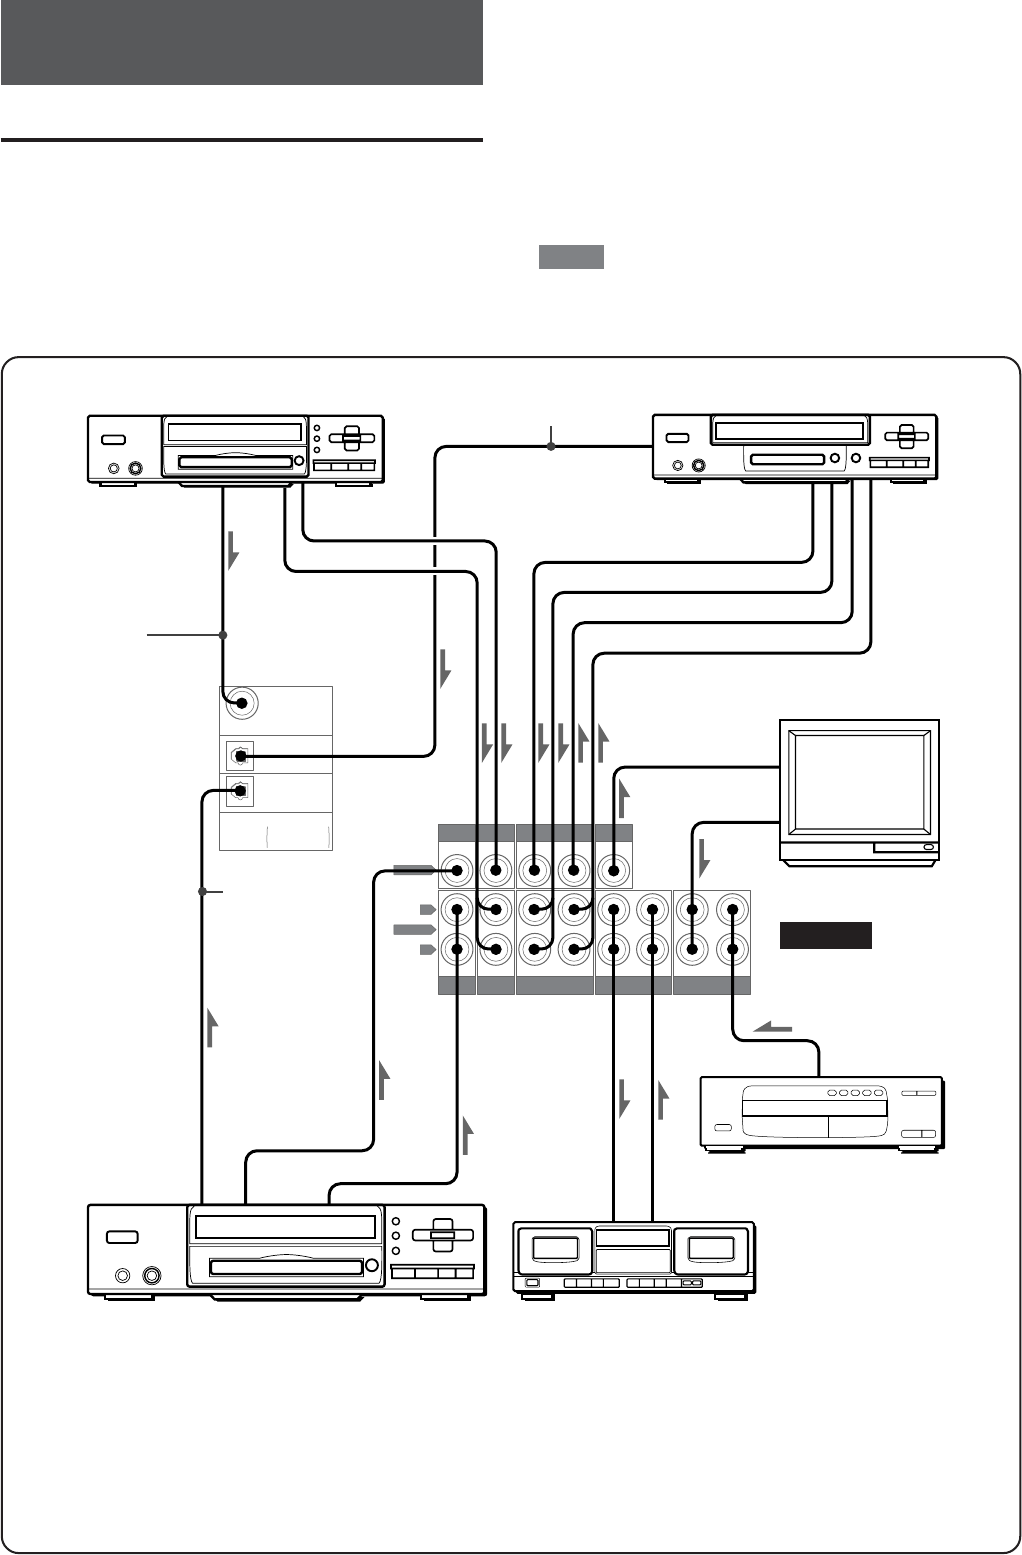 Page 4 of Aiwa Stereo Receiver AV-NW31 User Guide